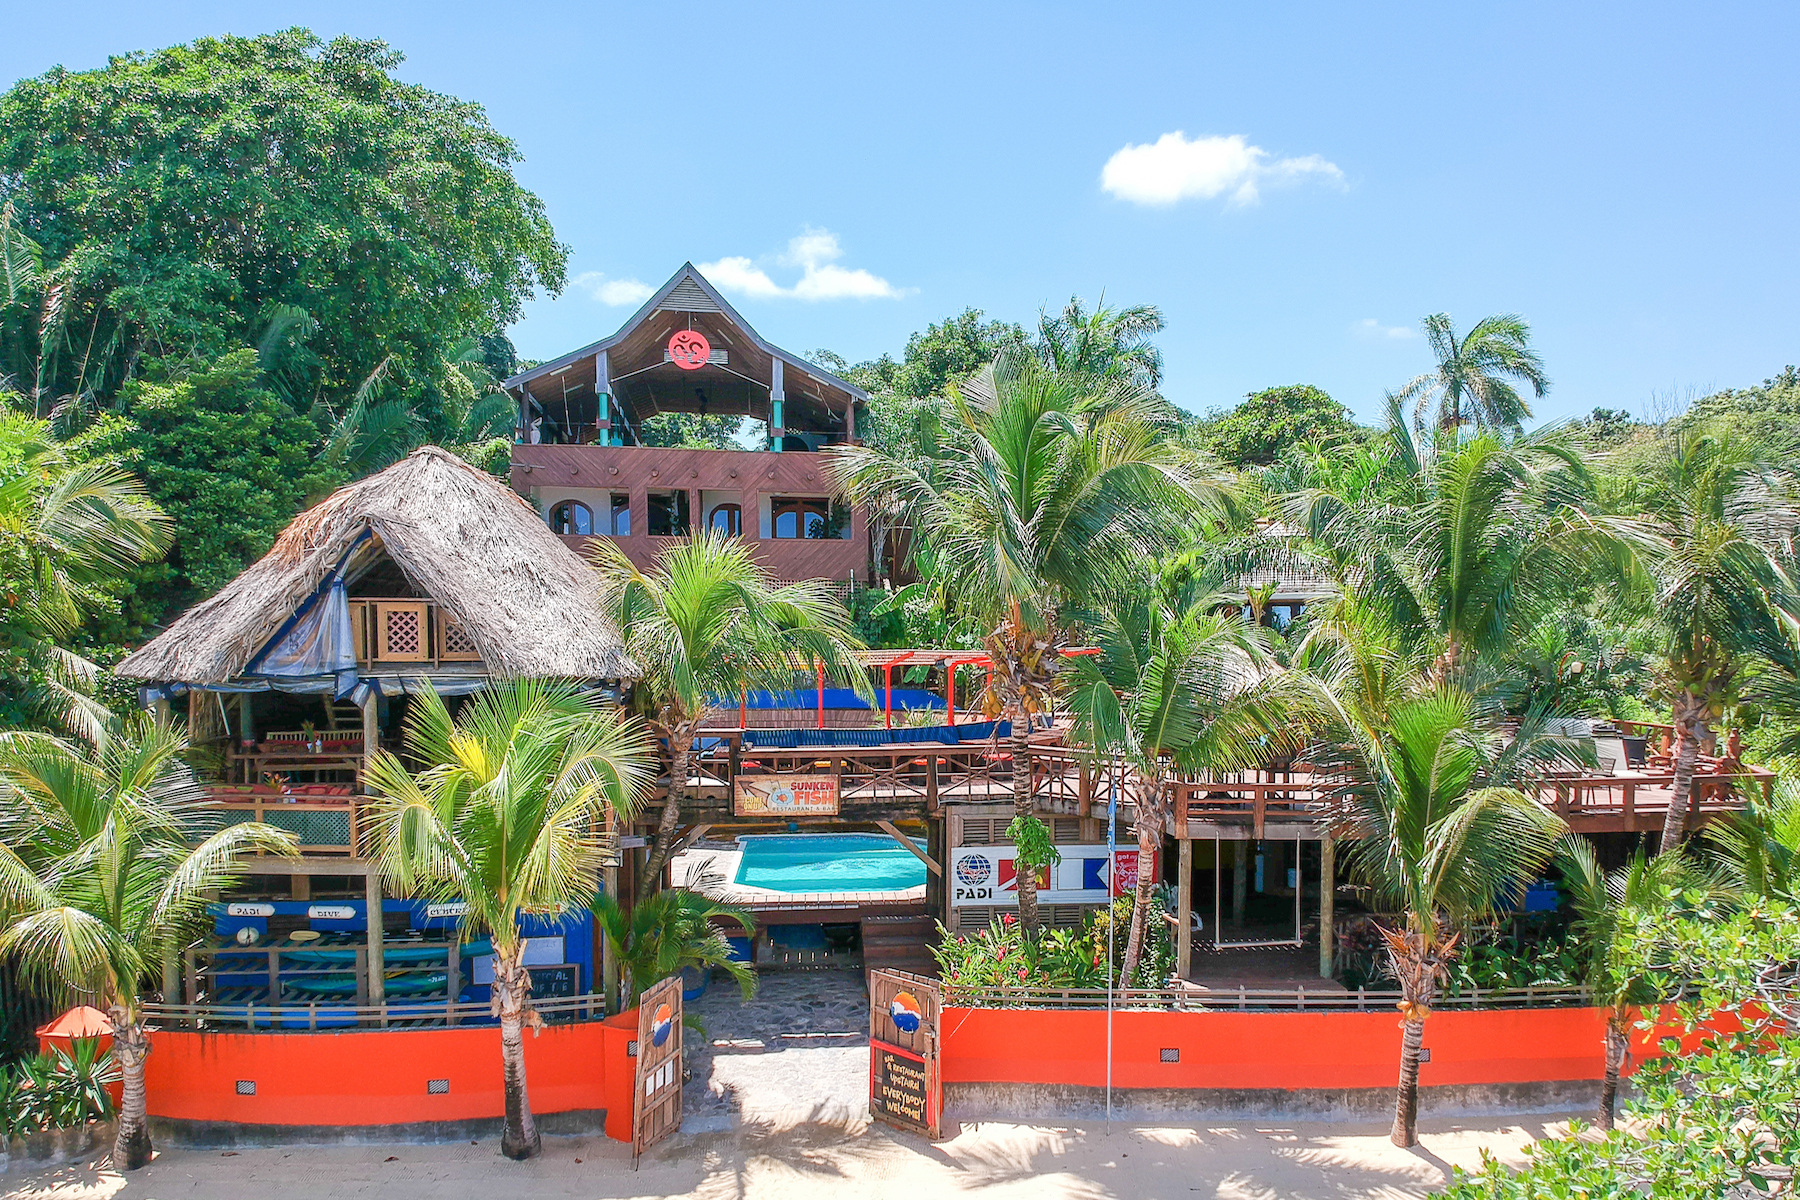 Casa Multifamiliar por un Venta en Tranquilseas Eco Lodge Tranquilseas Eco Lodge Sandy Bay, Roatan, Bay Islands, 34101 Honduras